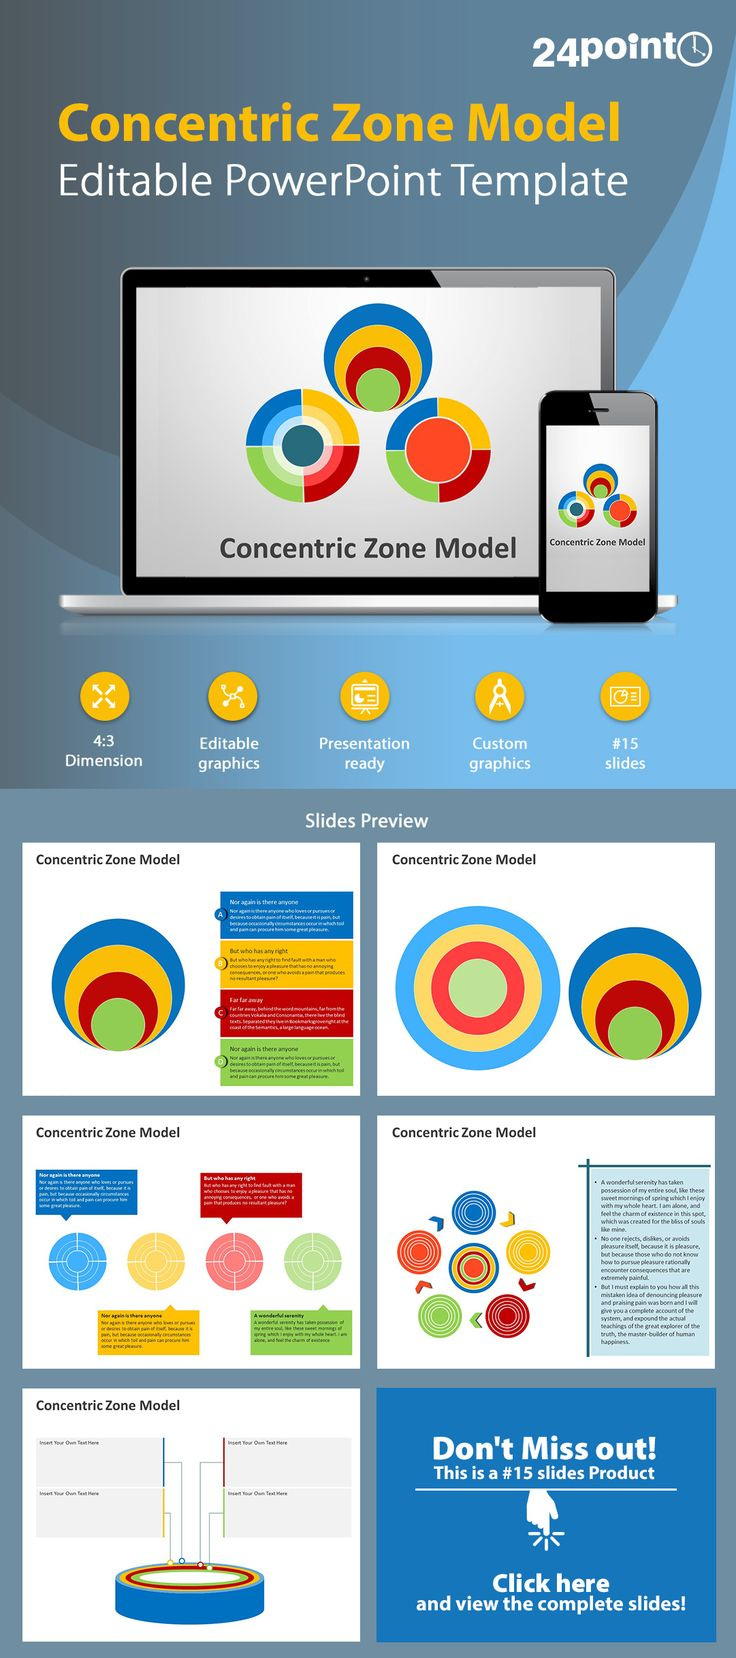 111 best powerpoint templates images on pinterest templates concentric zone model editable powerpoint template toneelgroepblik Choice Image